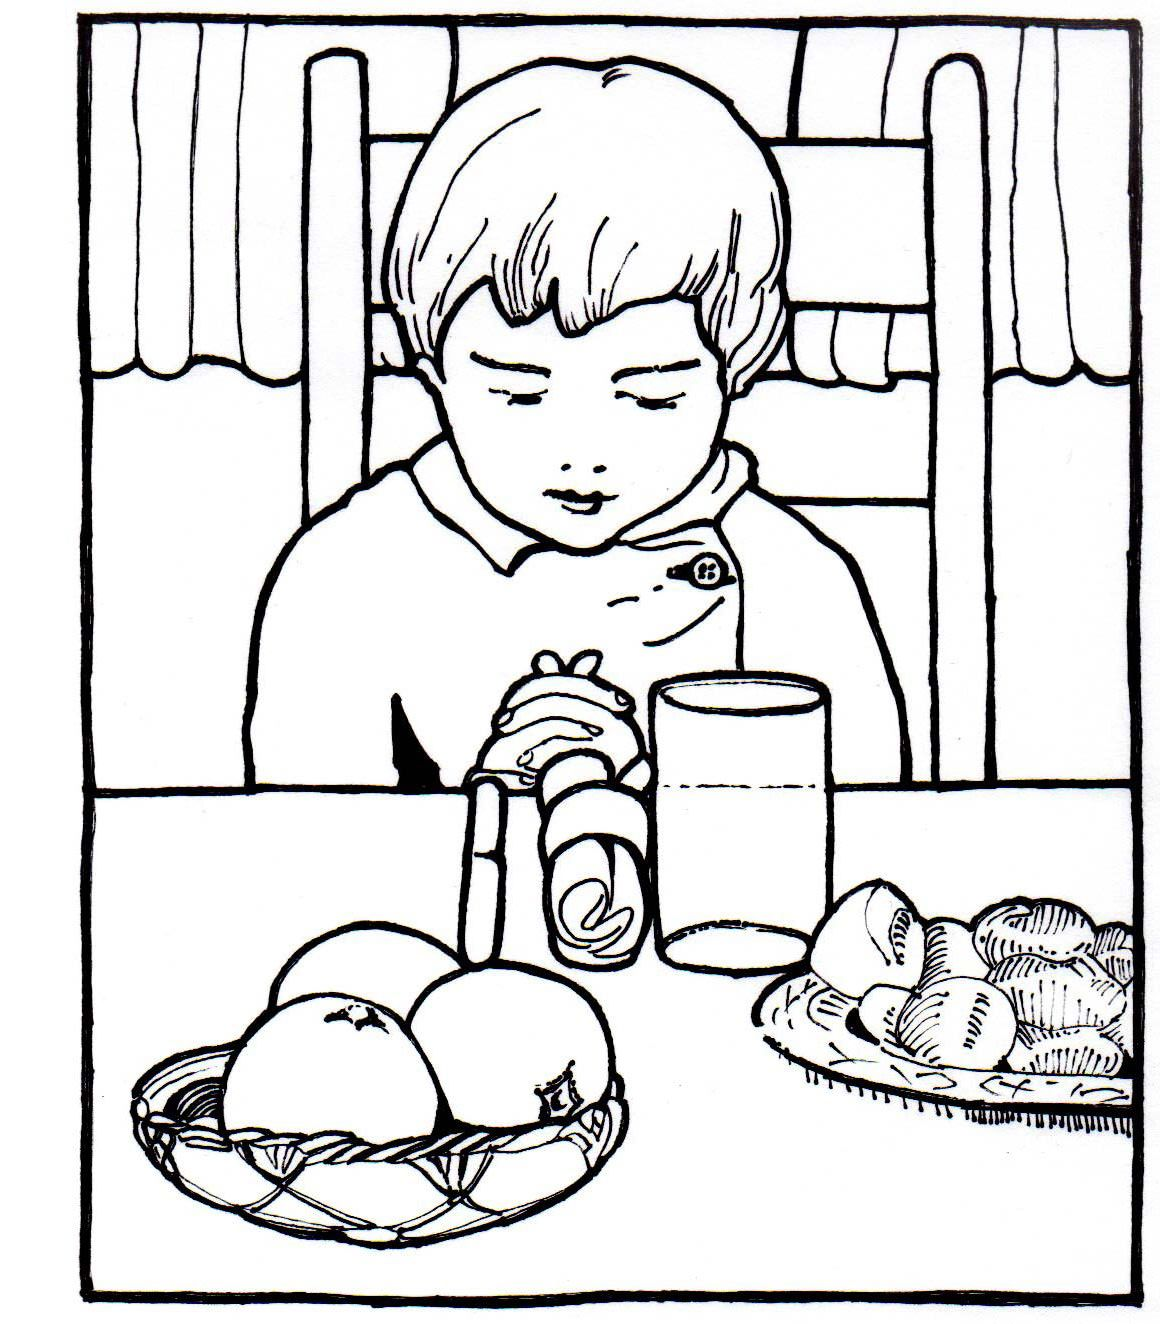 Coloring Page Of A Boy Praying Grace Before A Meal With Images